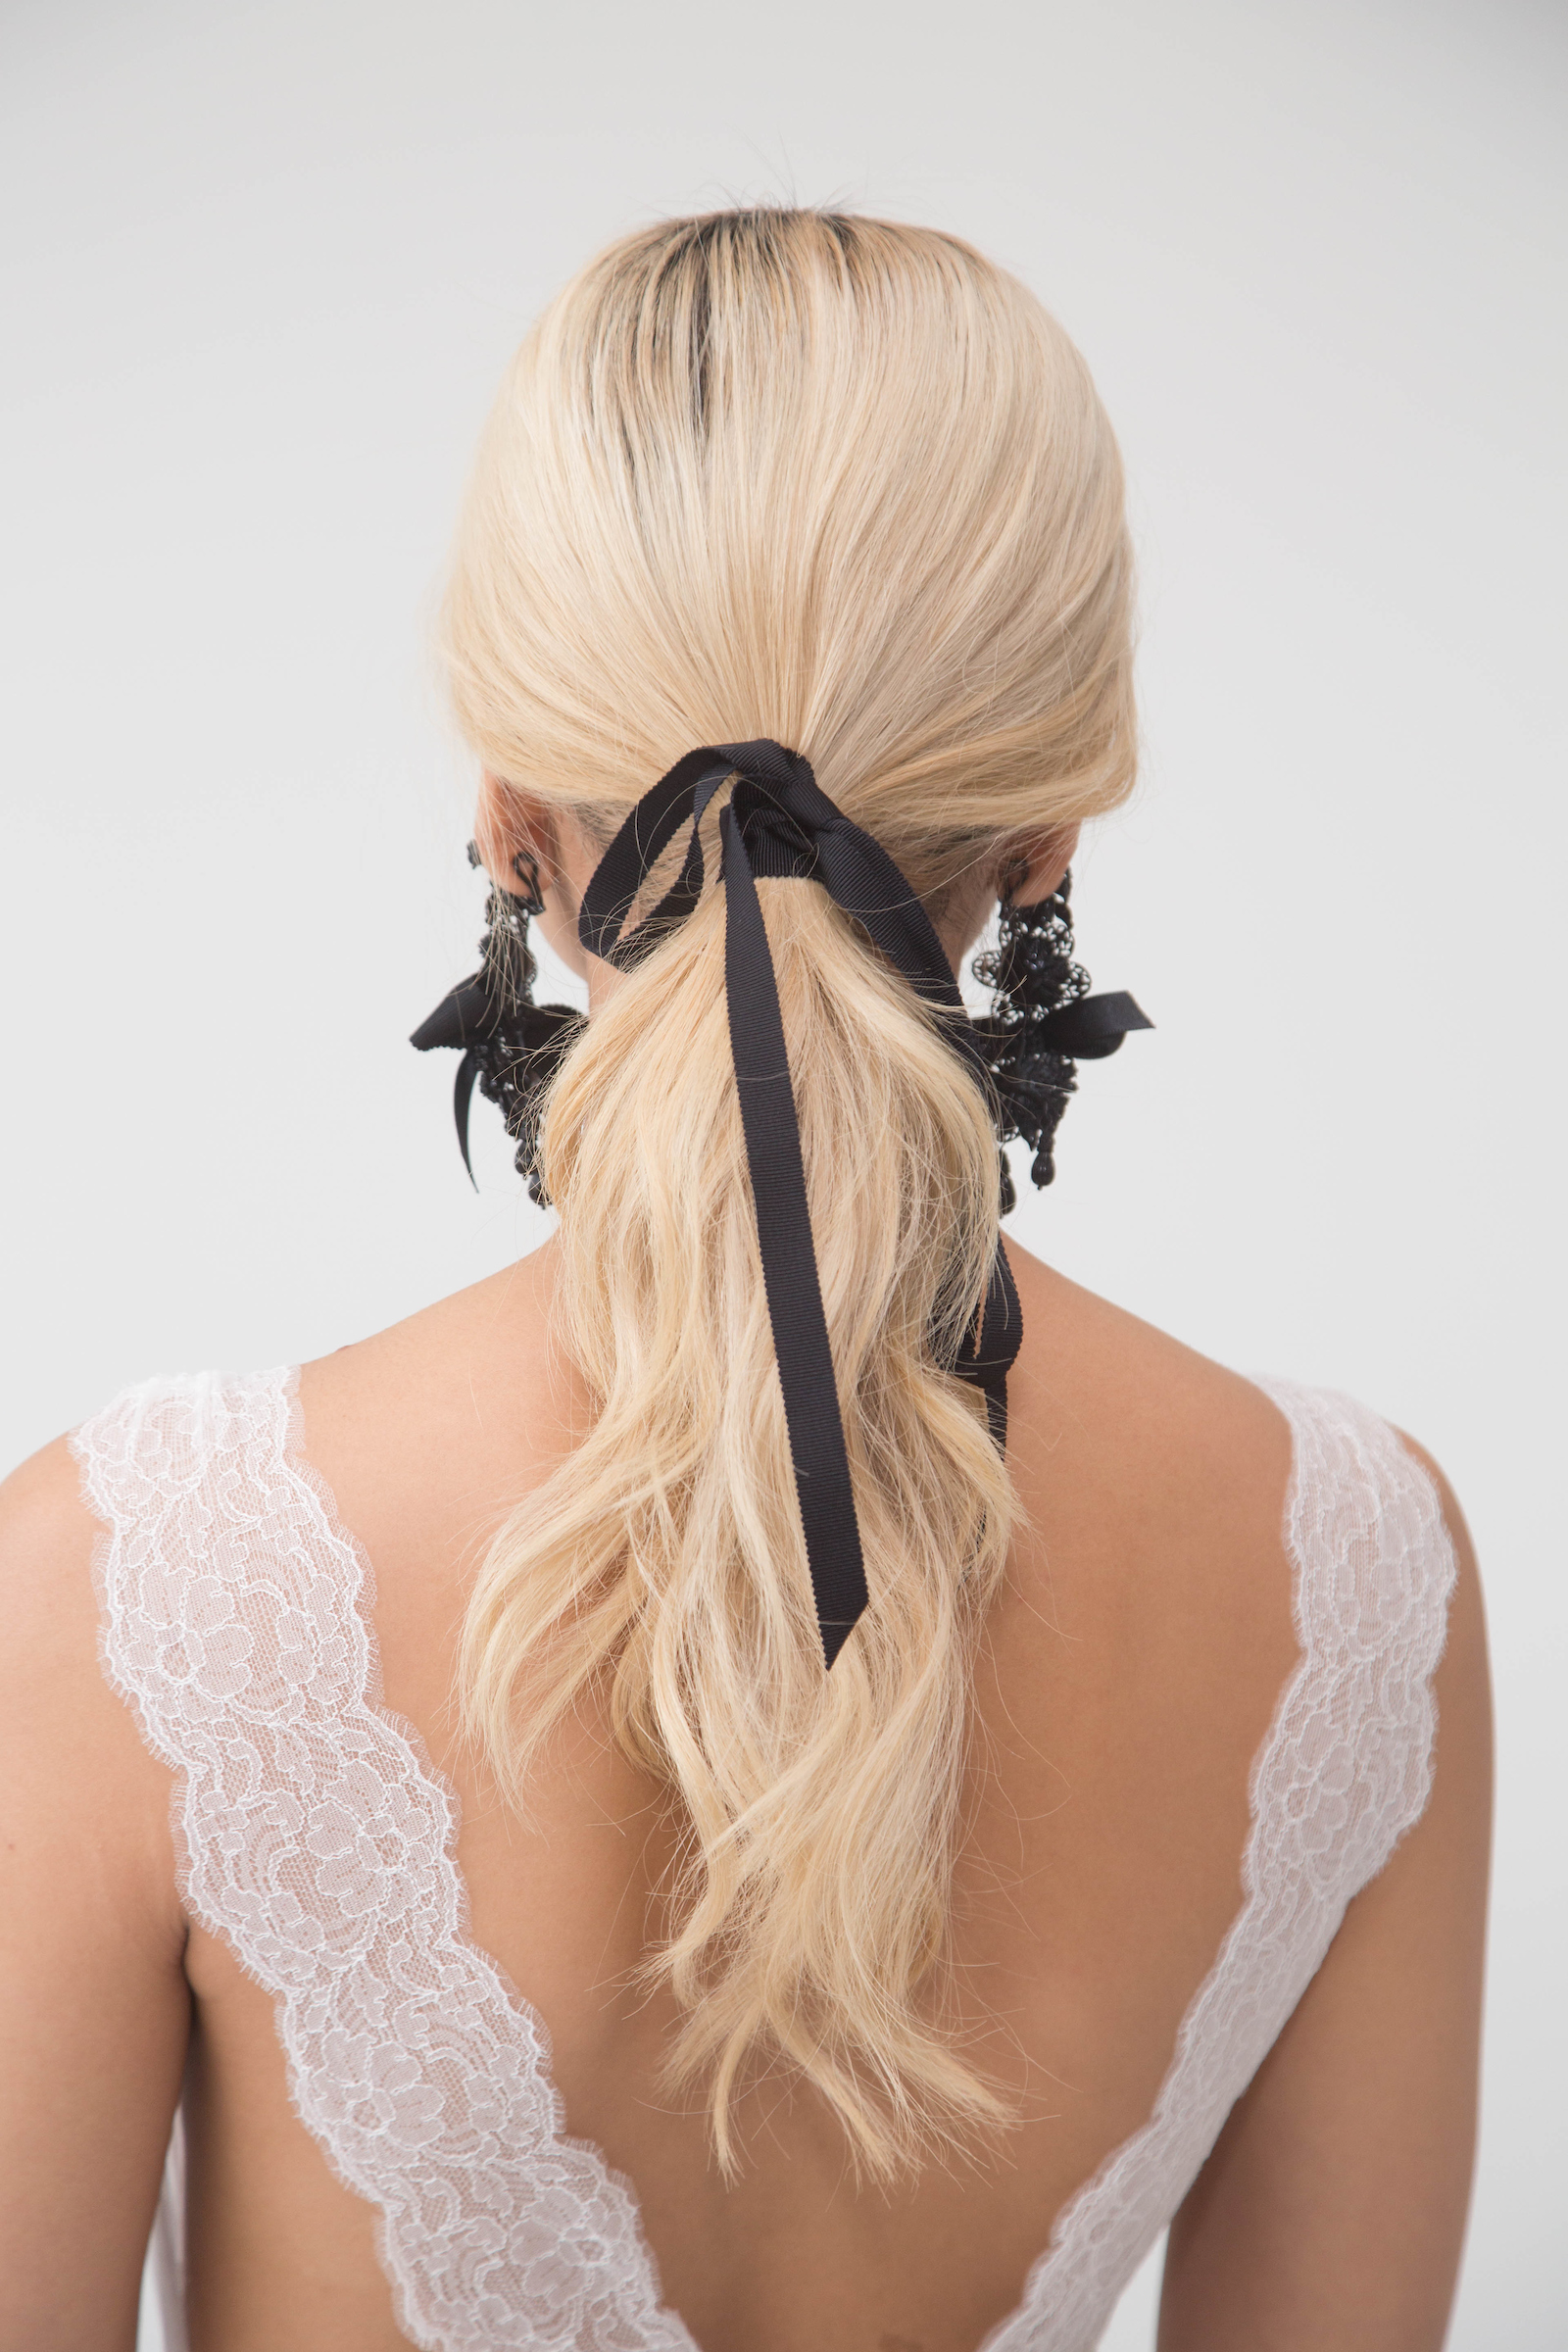 Marchesa Couture Hairstyle for Spring 2018 Bridal Fashion Week